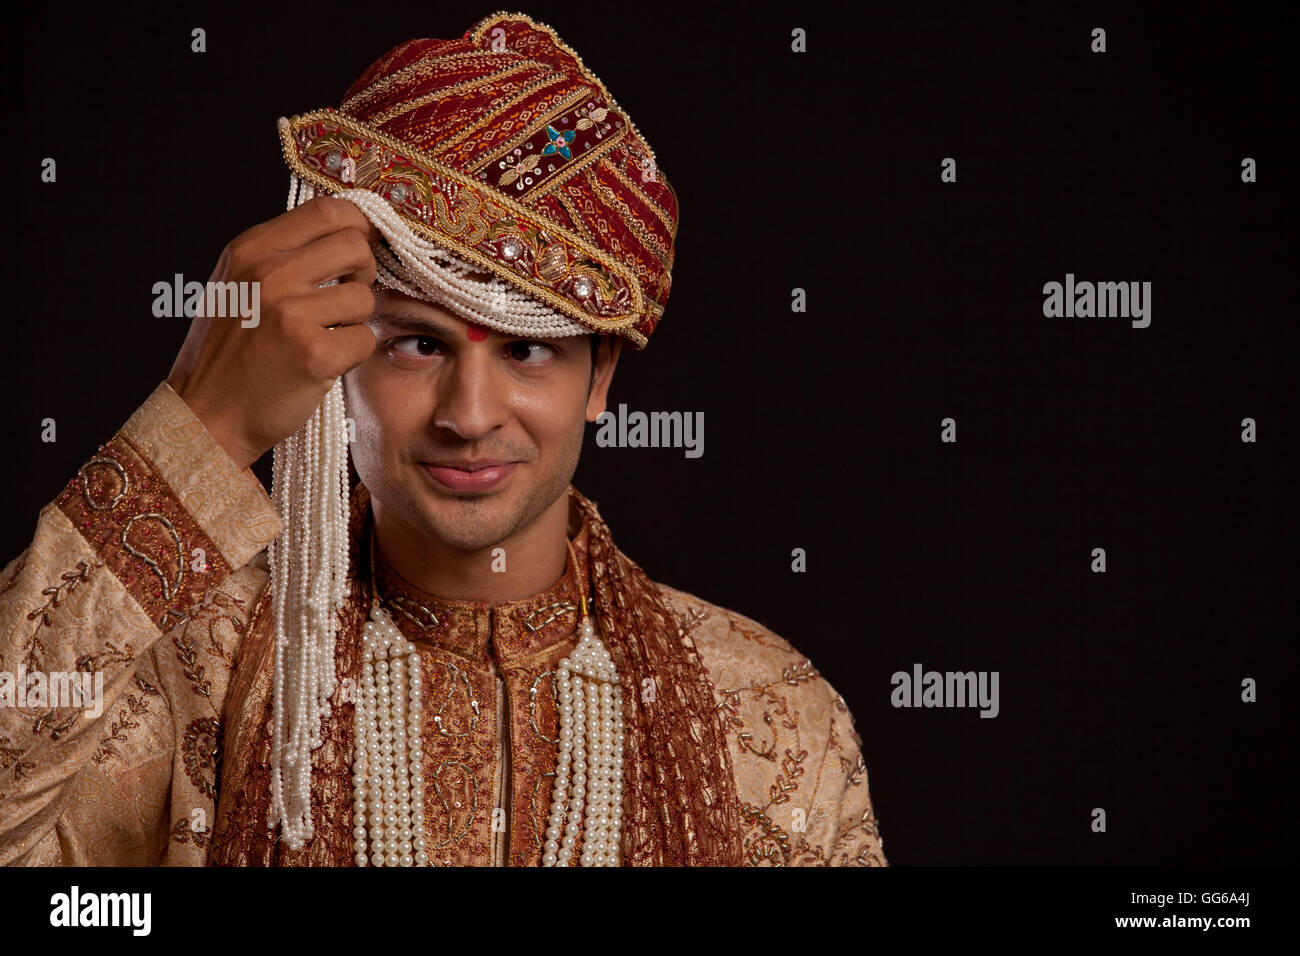 Gujarati groom with a headdress making a face - Stock Image